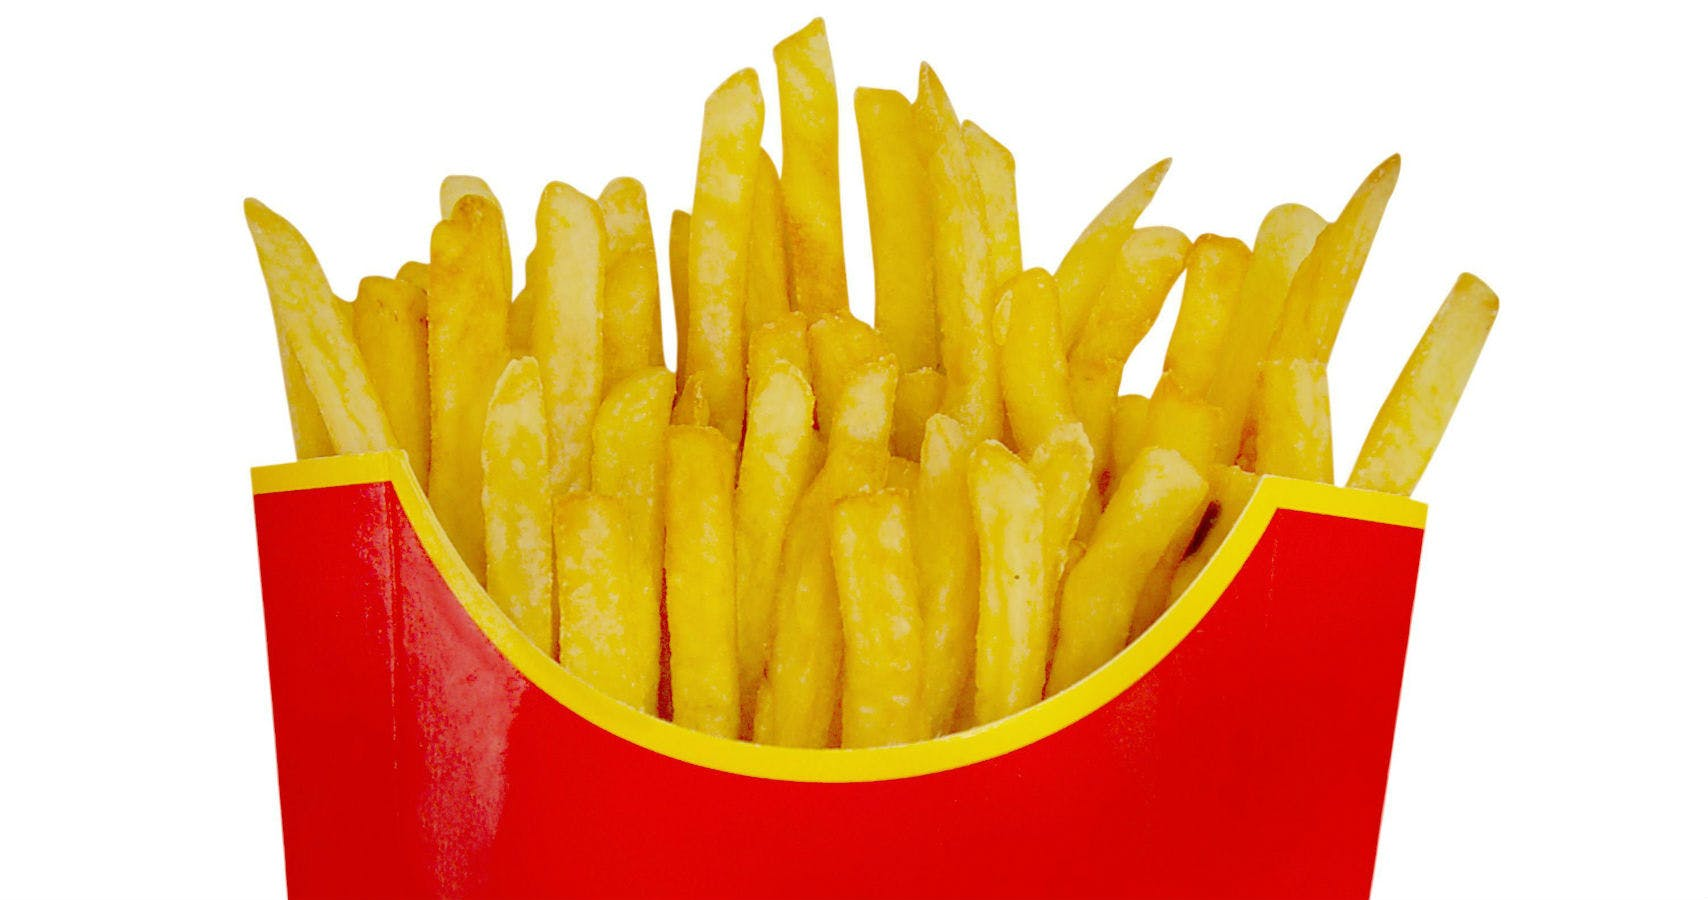 Harvard Professor Says You Should Only Eat 6 French Fries Per-Serving